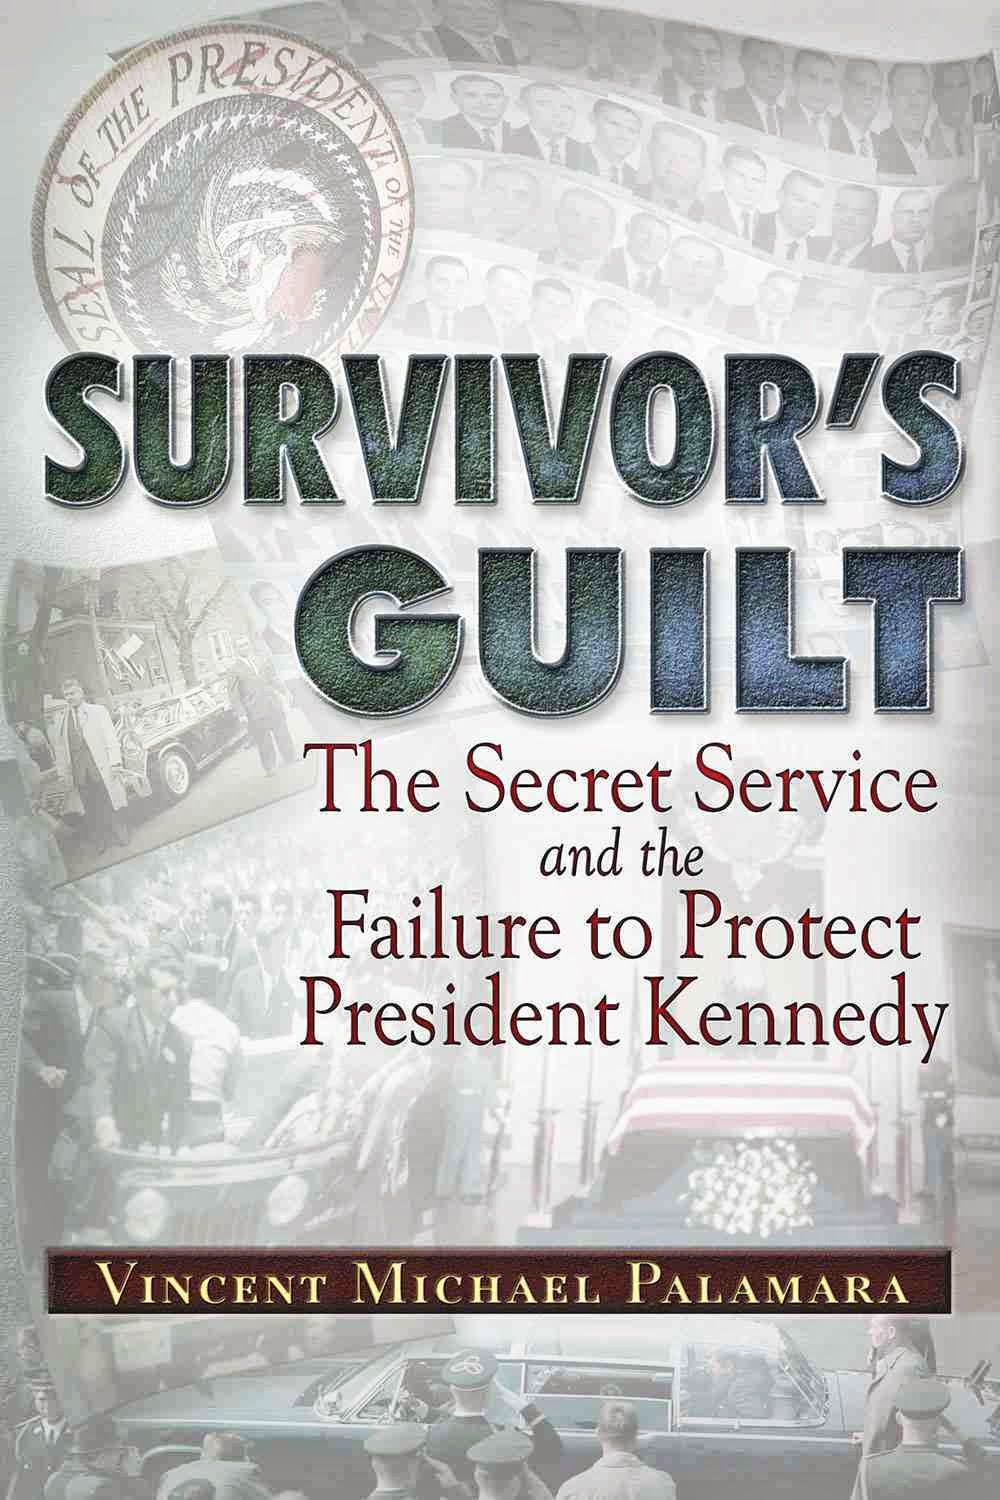 SURVIVOR'S GUILT- COMING OCTOBER 2013